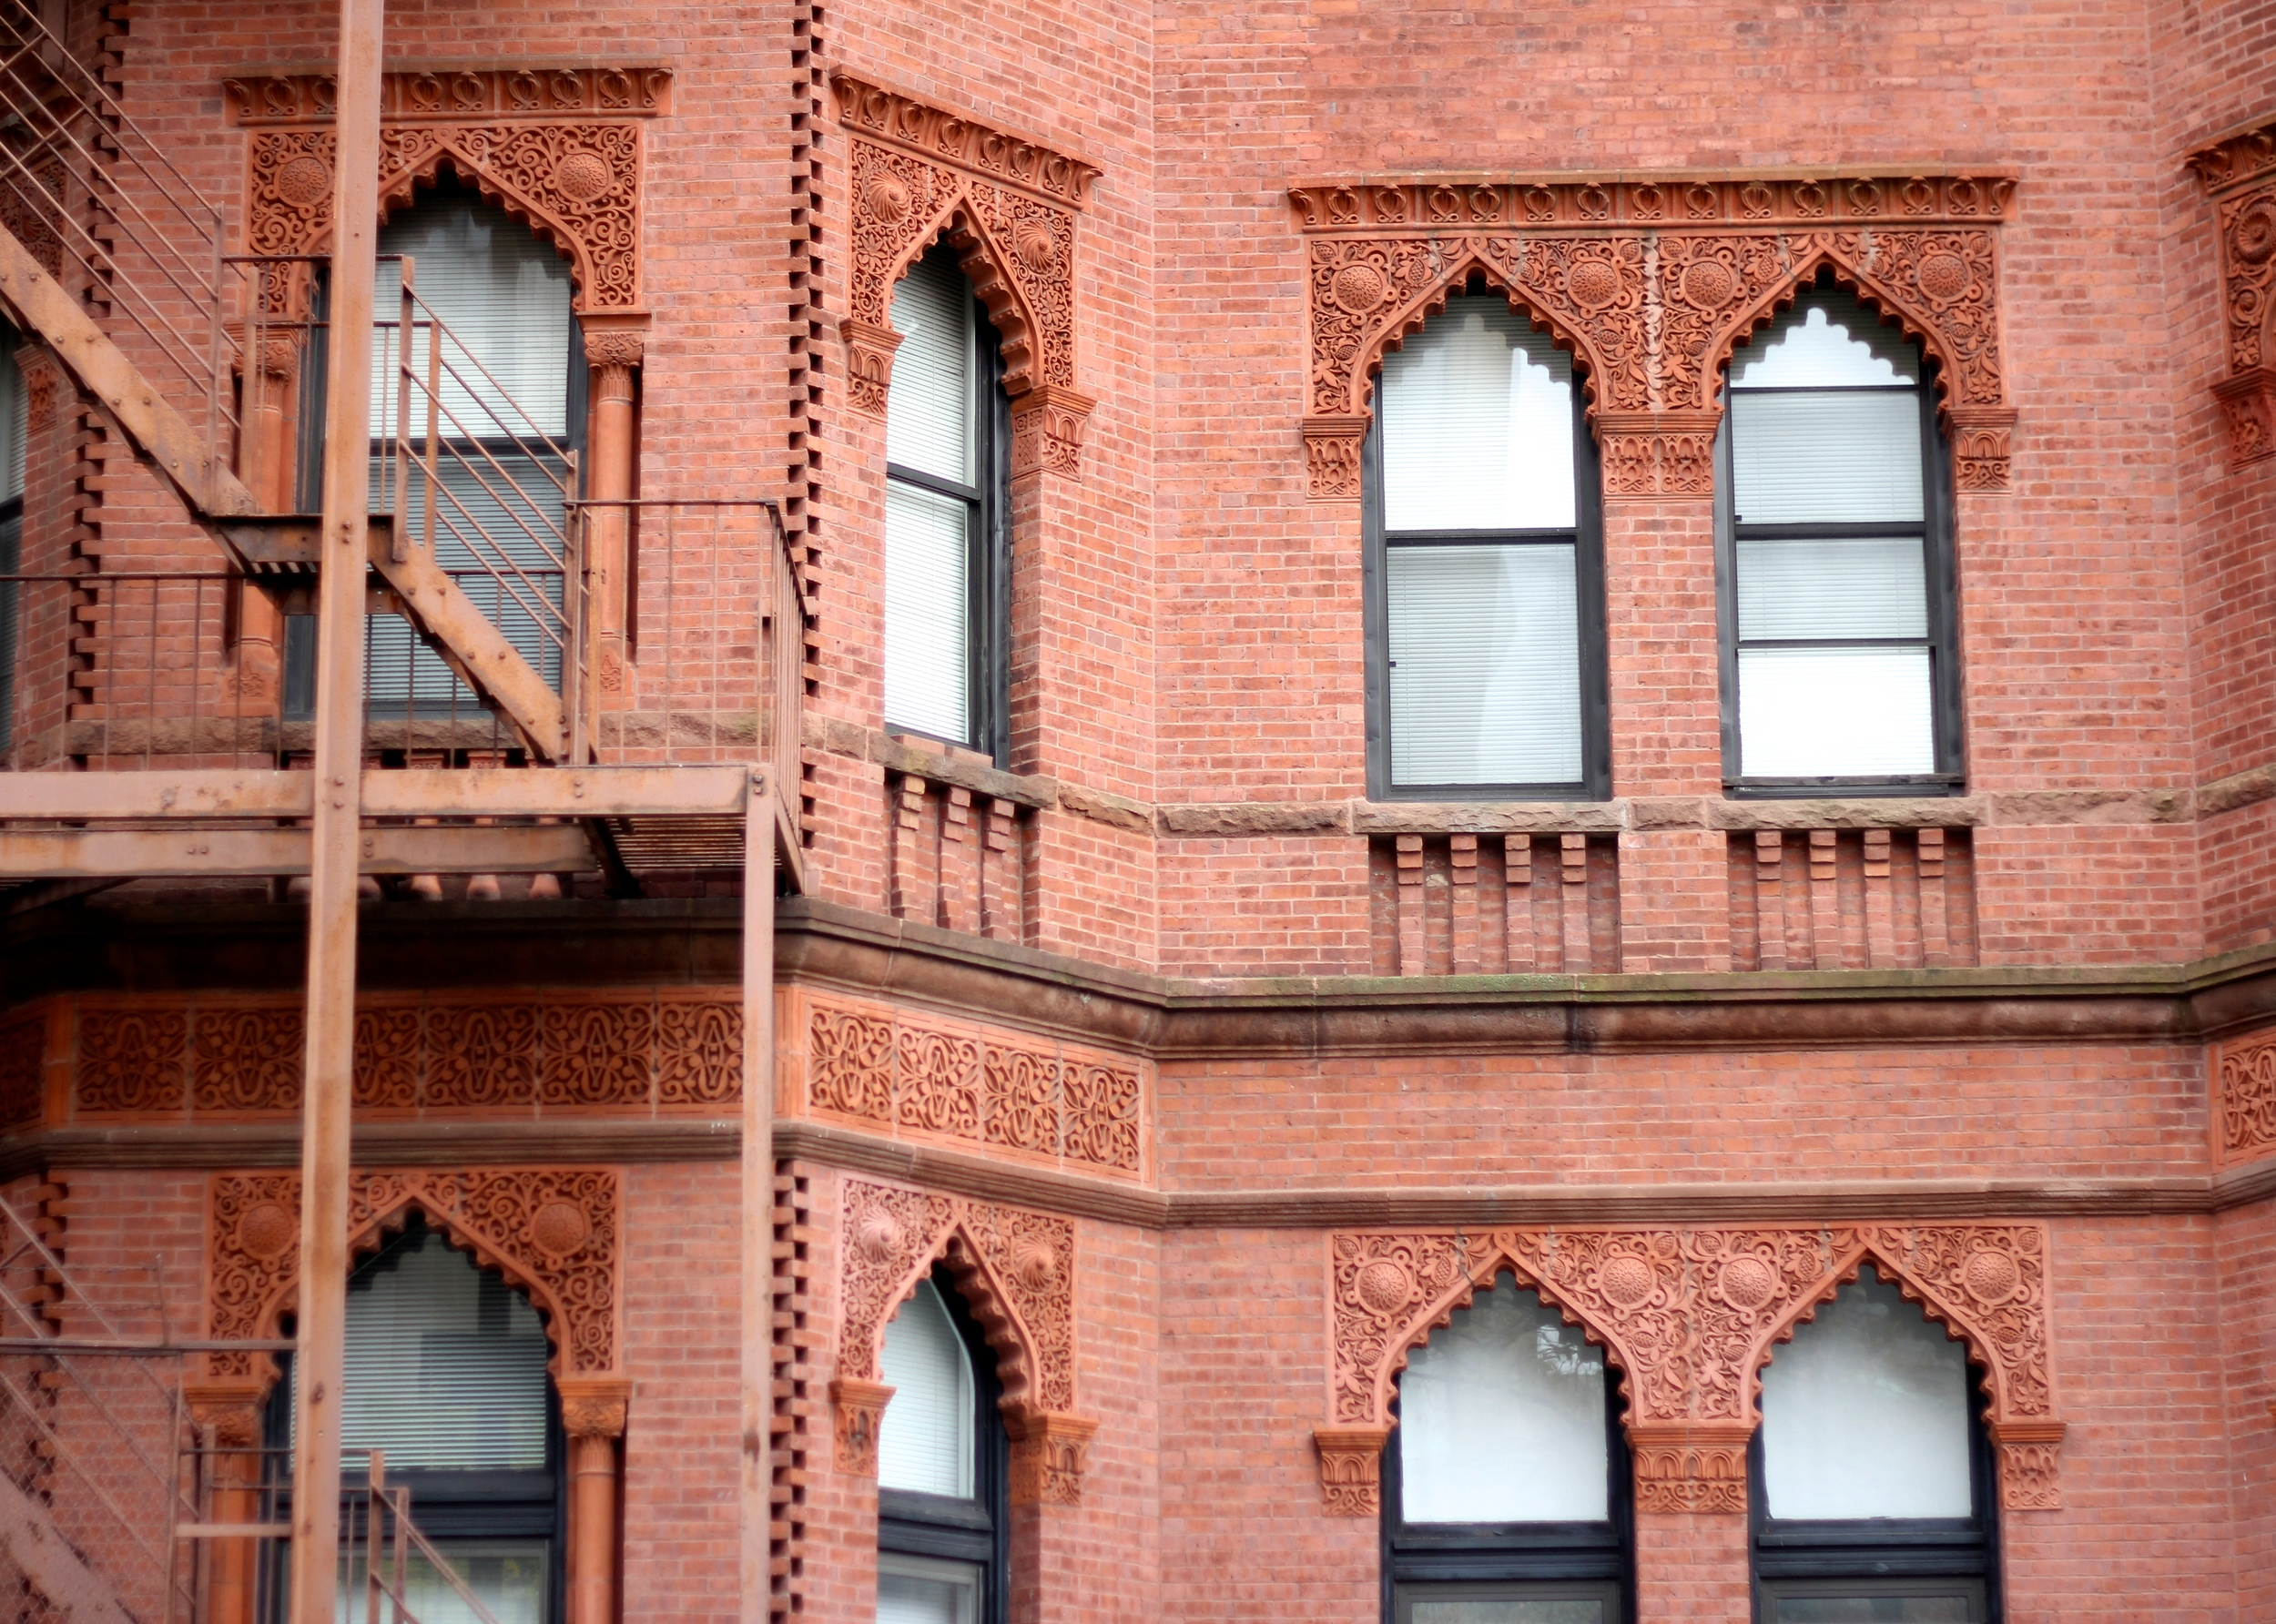 {Architectural details on Newbury St.}